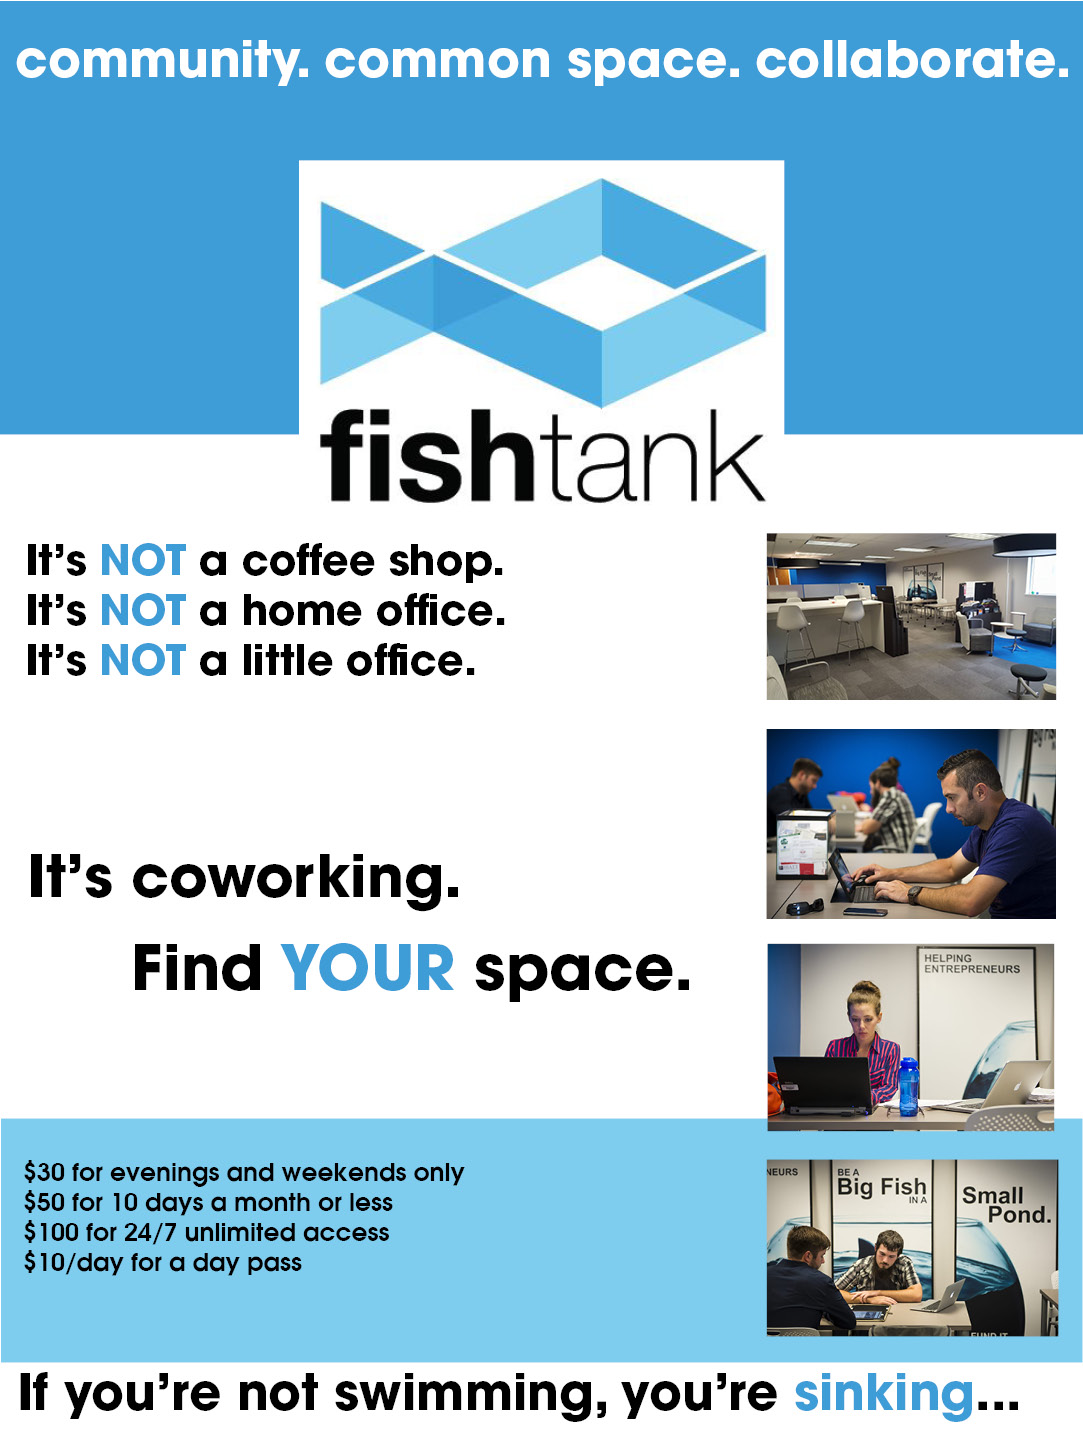 website graphic about fishtank2018